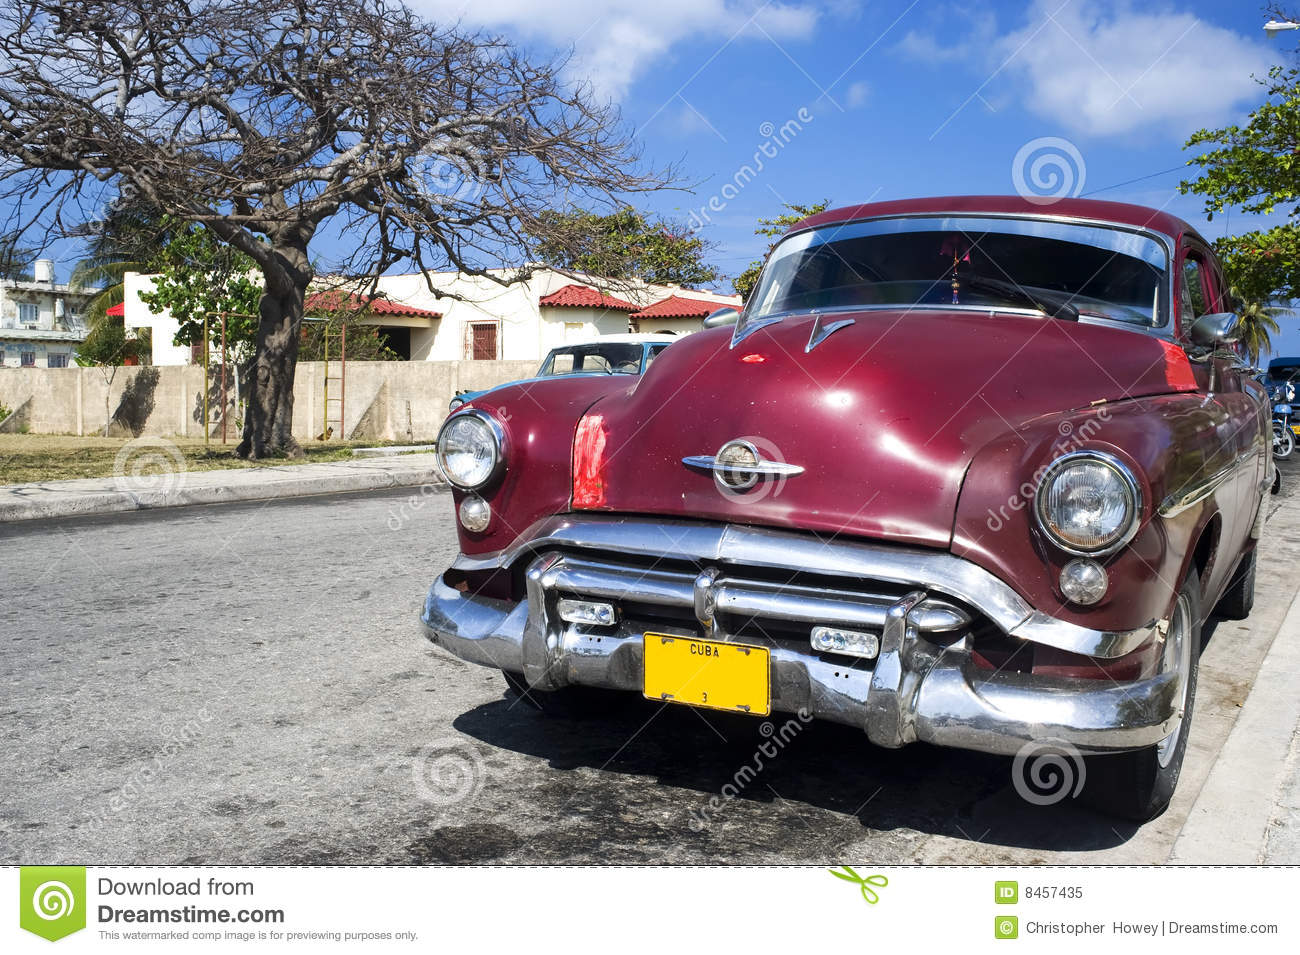 Old Car Stock Image. Image Of Street